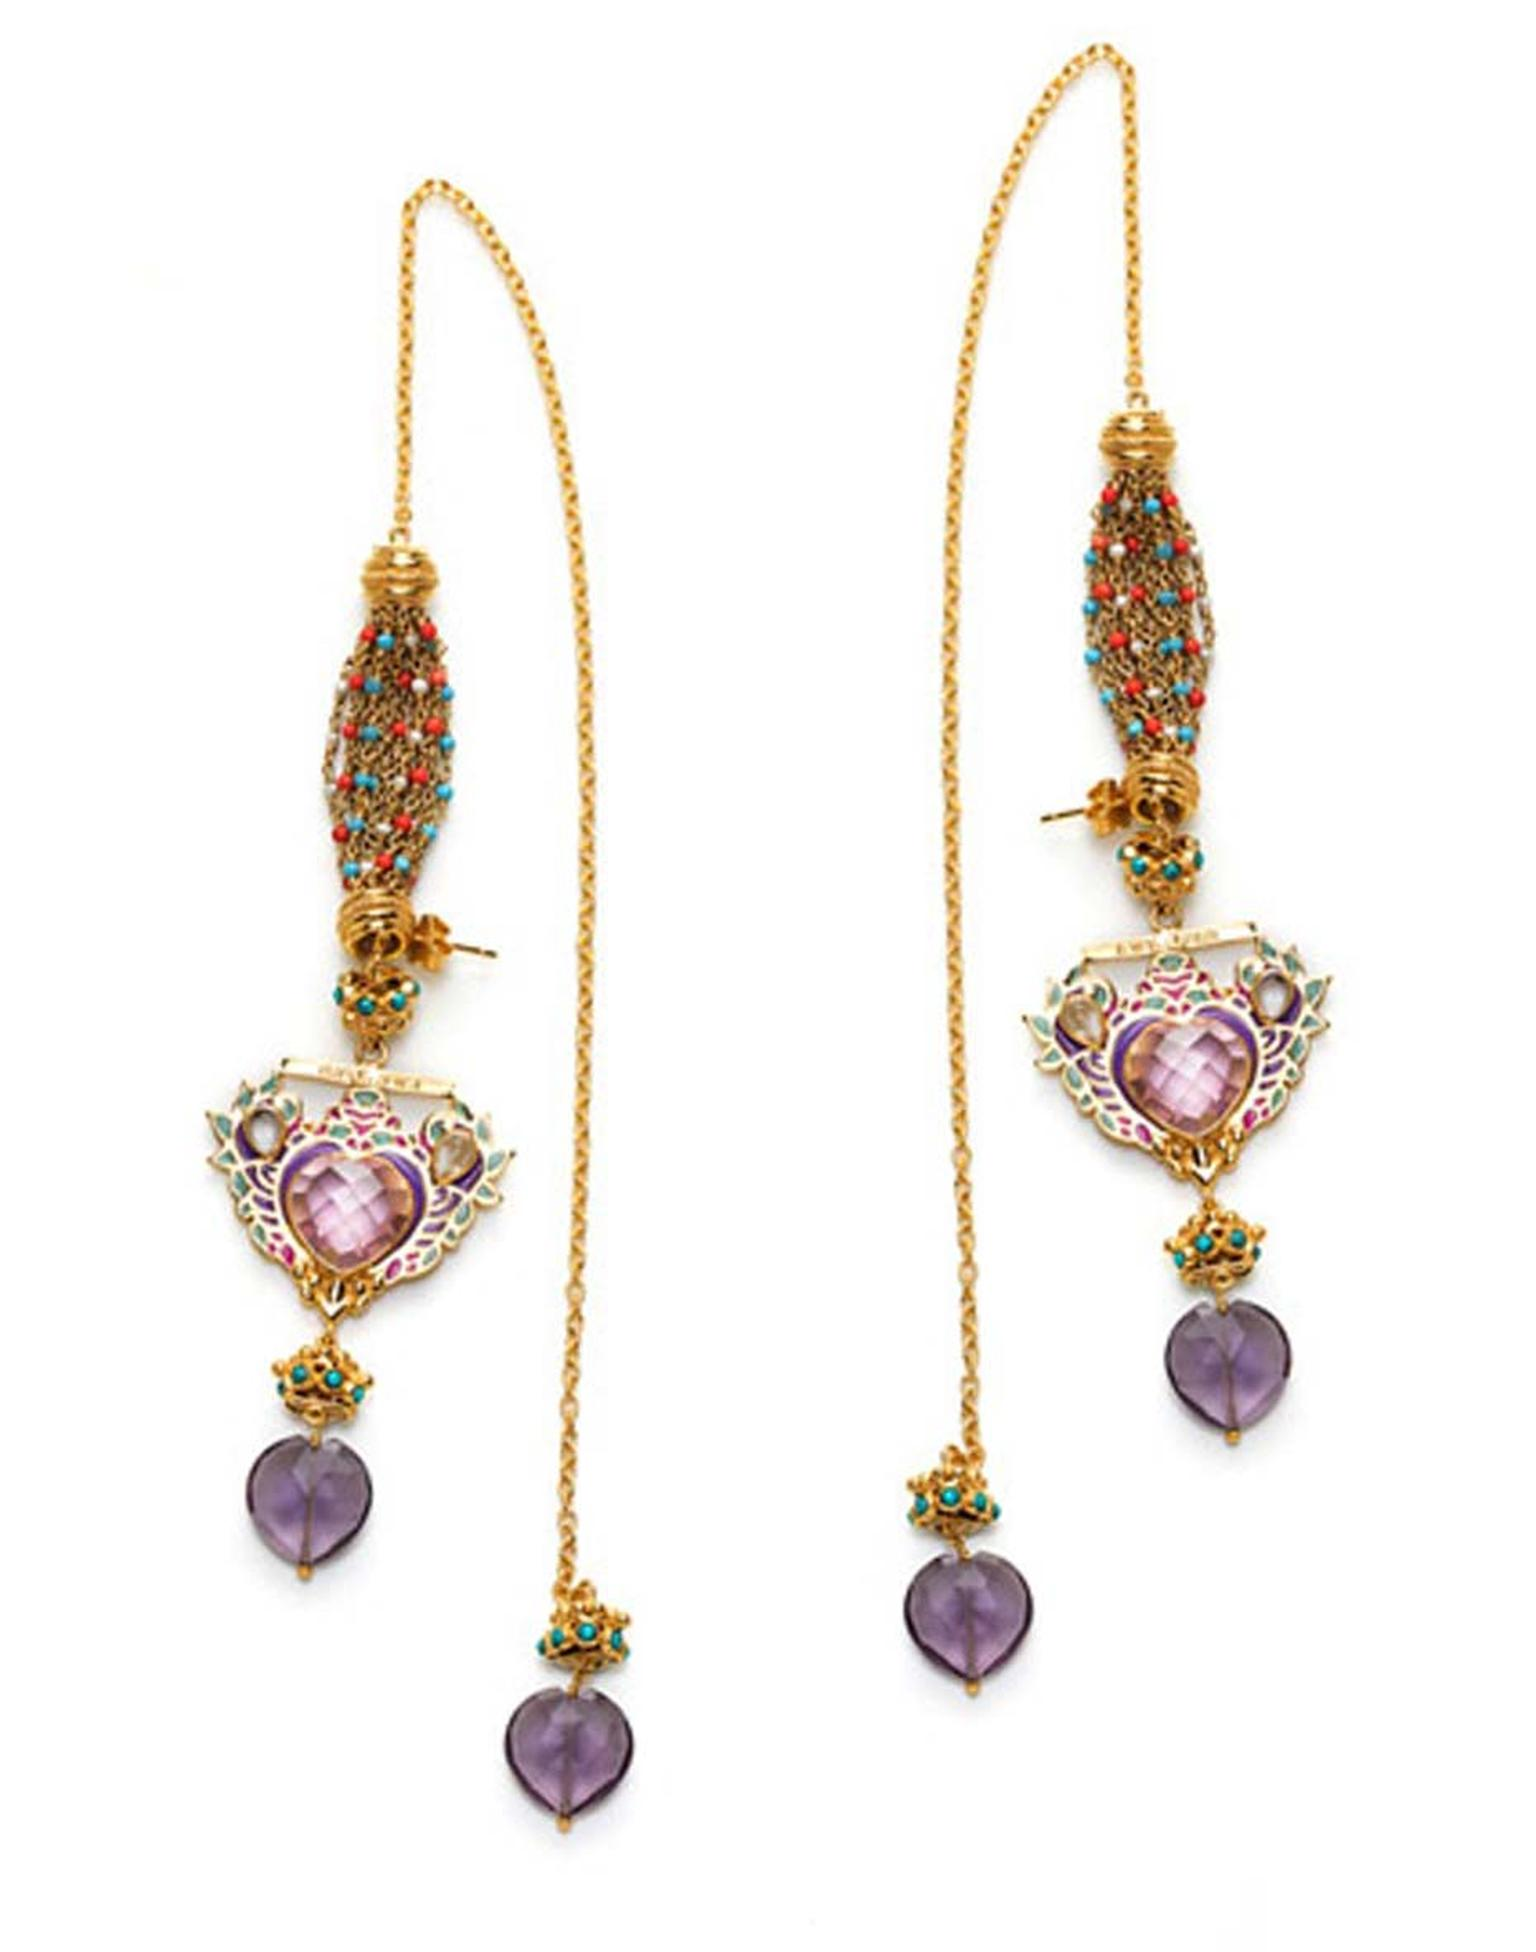 Amrapali Manish Arora earrings with heart-shaped amethysts, enamel work and gold chains.